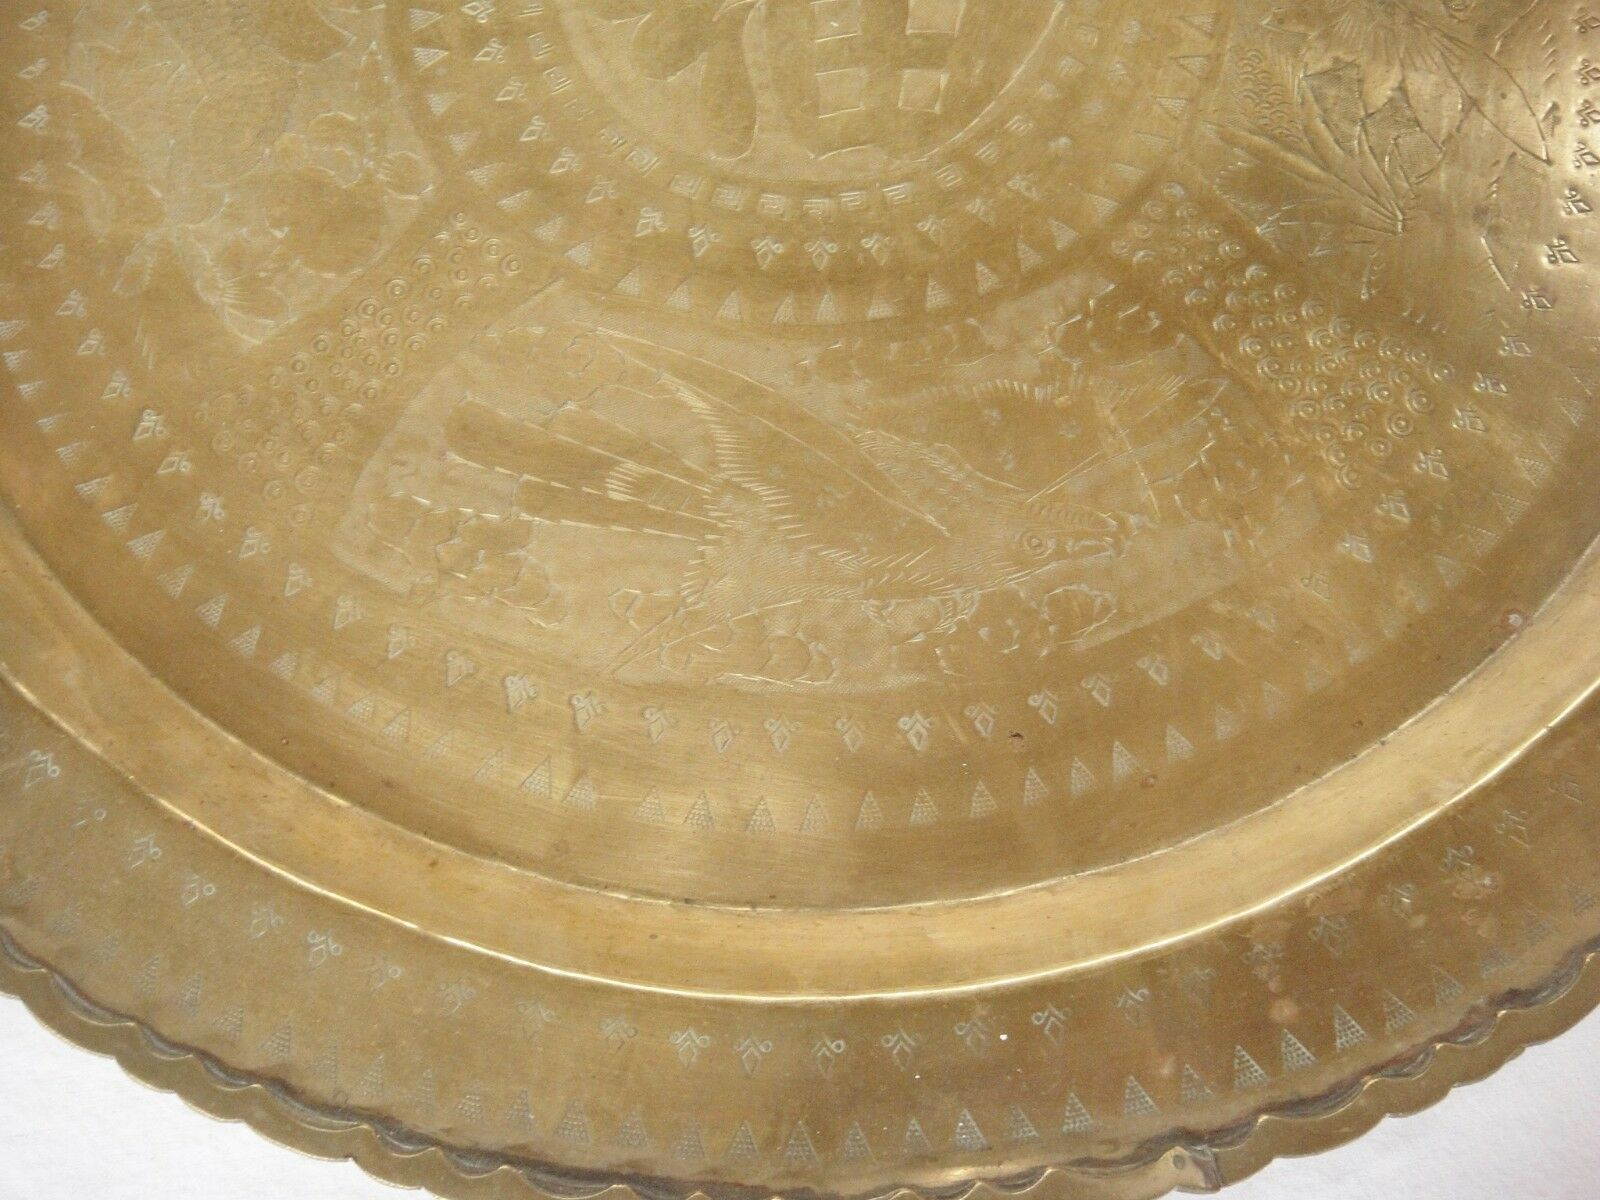 """Huge Brass Asian Tray Centerpiece Charger 22"""" Birds of Prey Rabbit Engraved HTF image 5"""